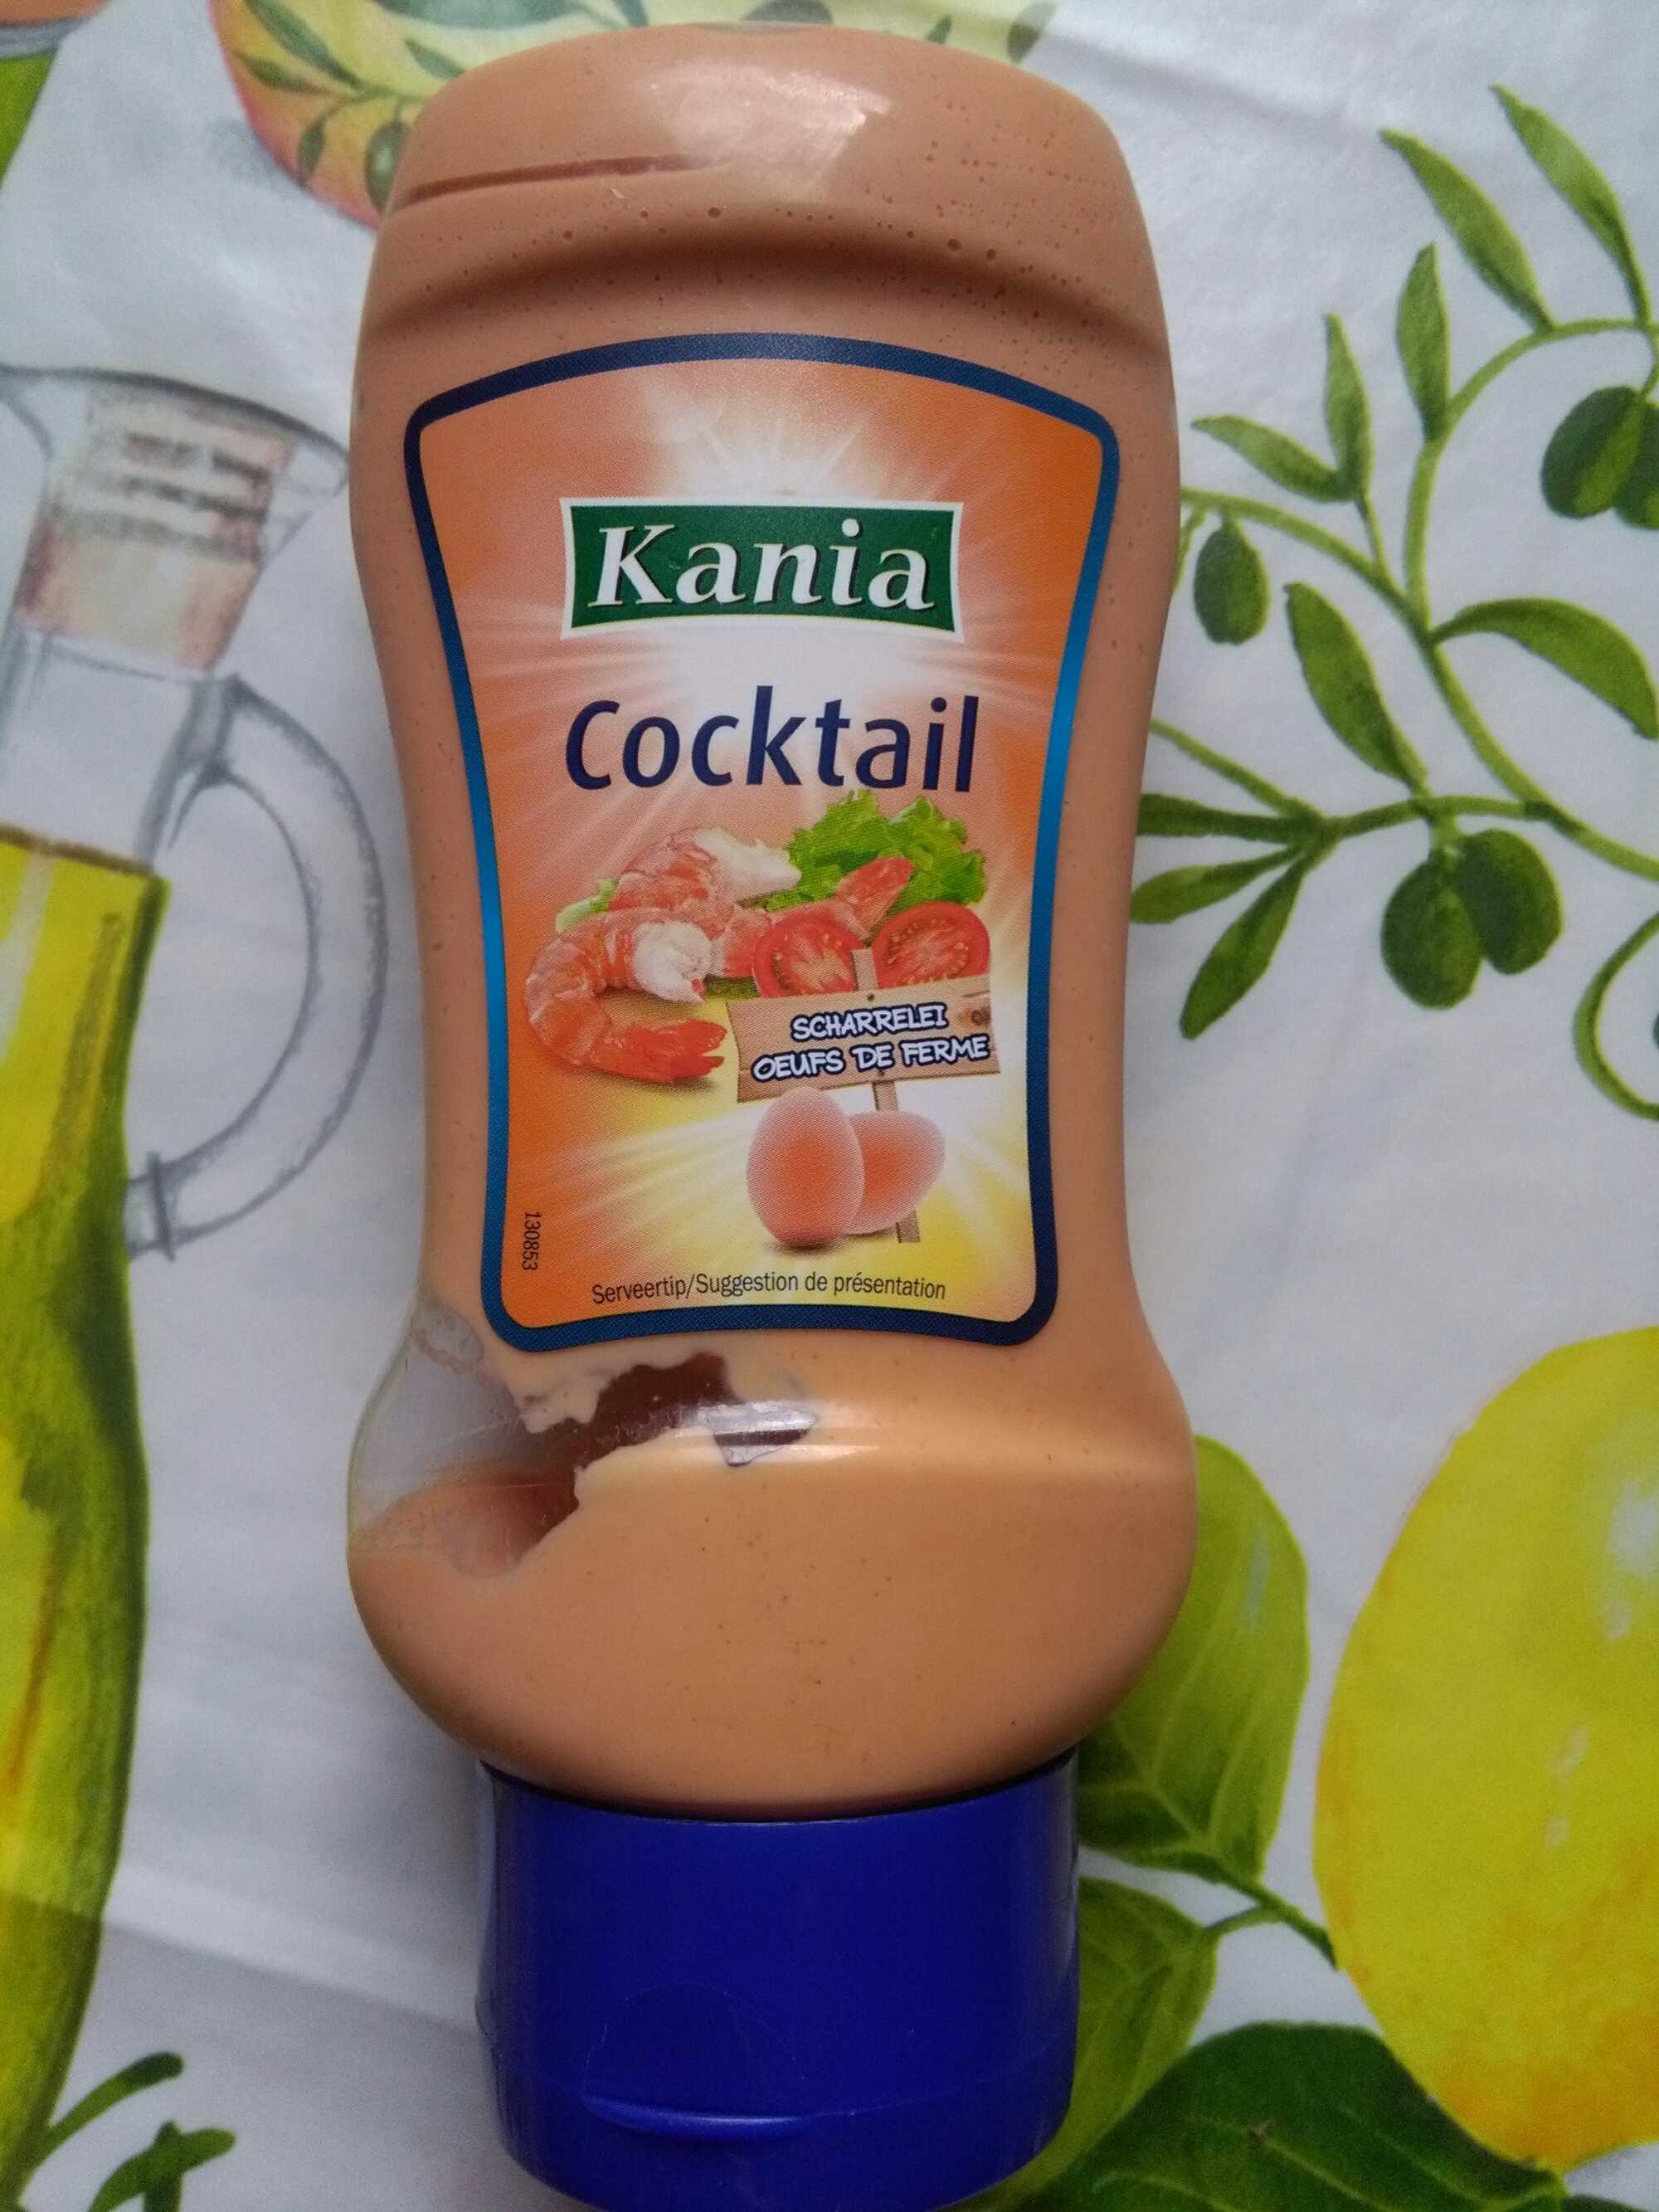 Sauce cocktail - kania - 350 ml (344 gr)